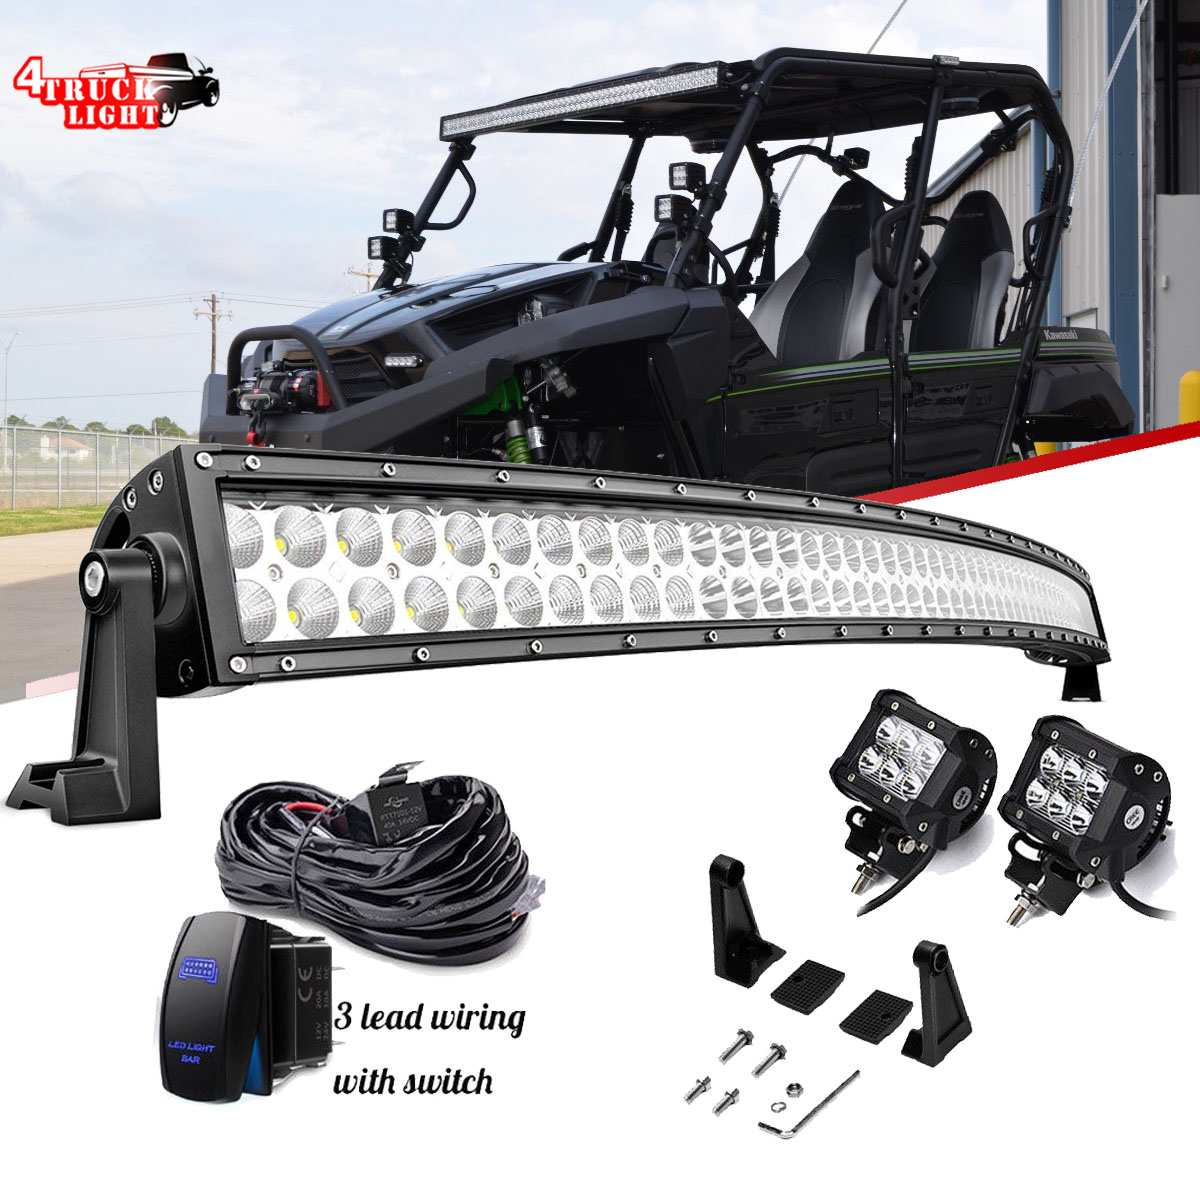 4 Pods Cube 288w 50 Curved Led Light Bar Kawasaki Teryx Teryx4 4010 Electrical Wiring Harness Mule 610